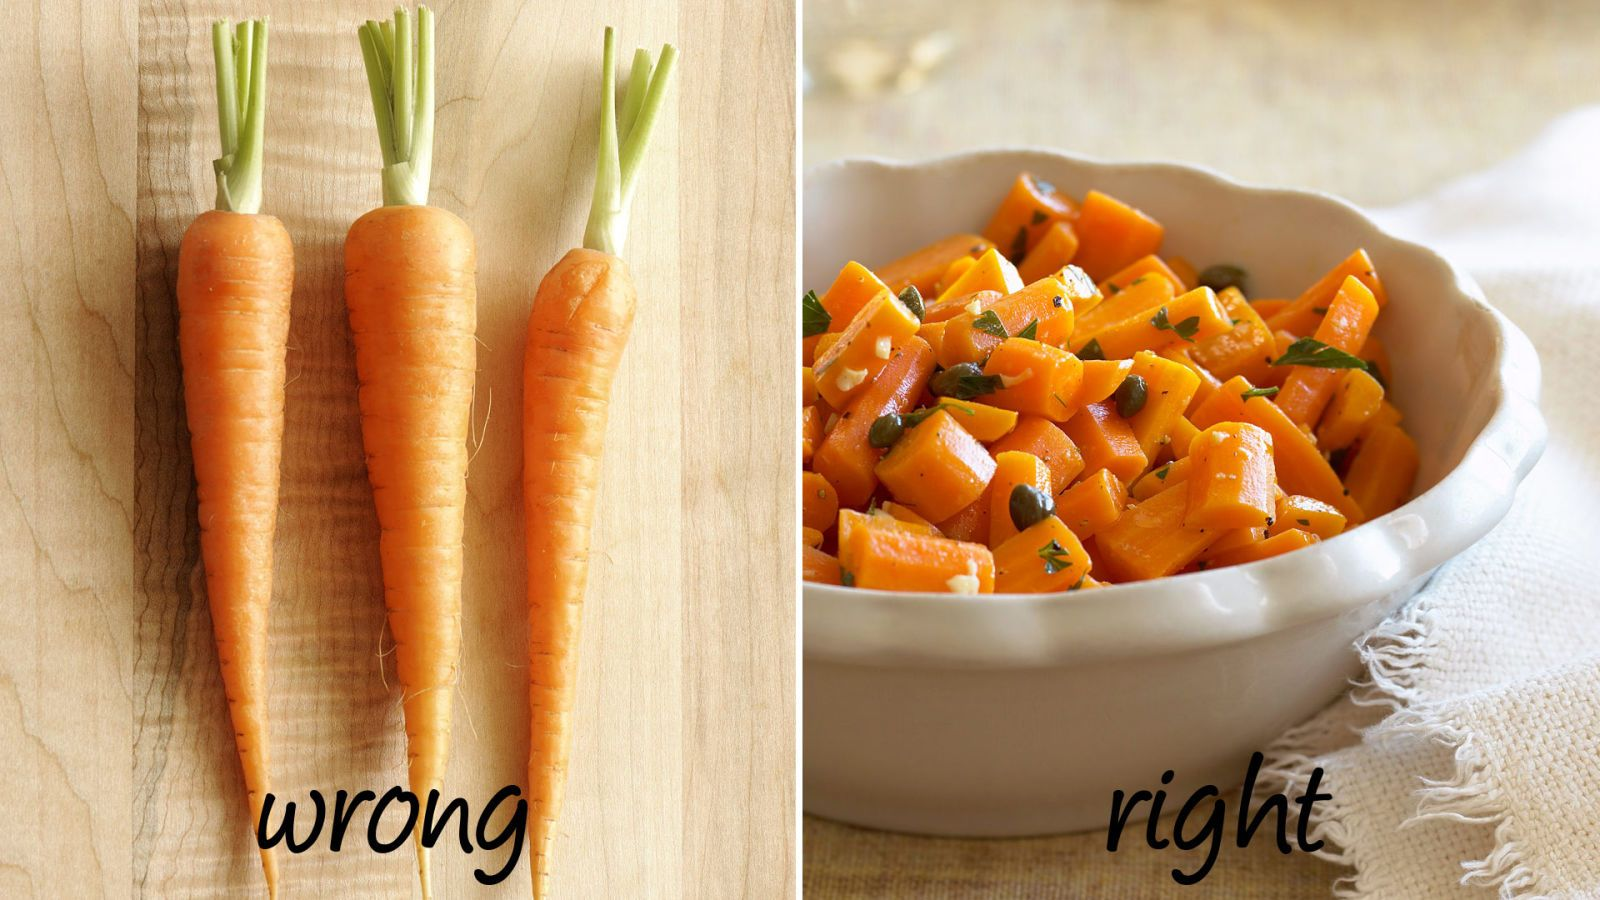 """<p><strong>Wrong</strong>: Many people eat these veggies raw, either for dunking purposes or in order to throw them into salads.</p> <p><strong>Right:</strong> Research from Columbia University published in the journal <a href=""""http://cebp.aacrjournals.org/content/13/9/1422.long""""><em>Cancer Epidemiology, Biomarkers & Prevention</em></a> found that cooking carrots increases the bioavailability of carotenoids—they boost your immune system and heart health and decrease your risk of disease, especially certain cancers and eye disease—so your body is then better able to absorb those important nutrients.</p>"""